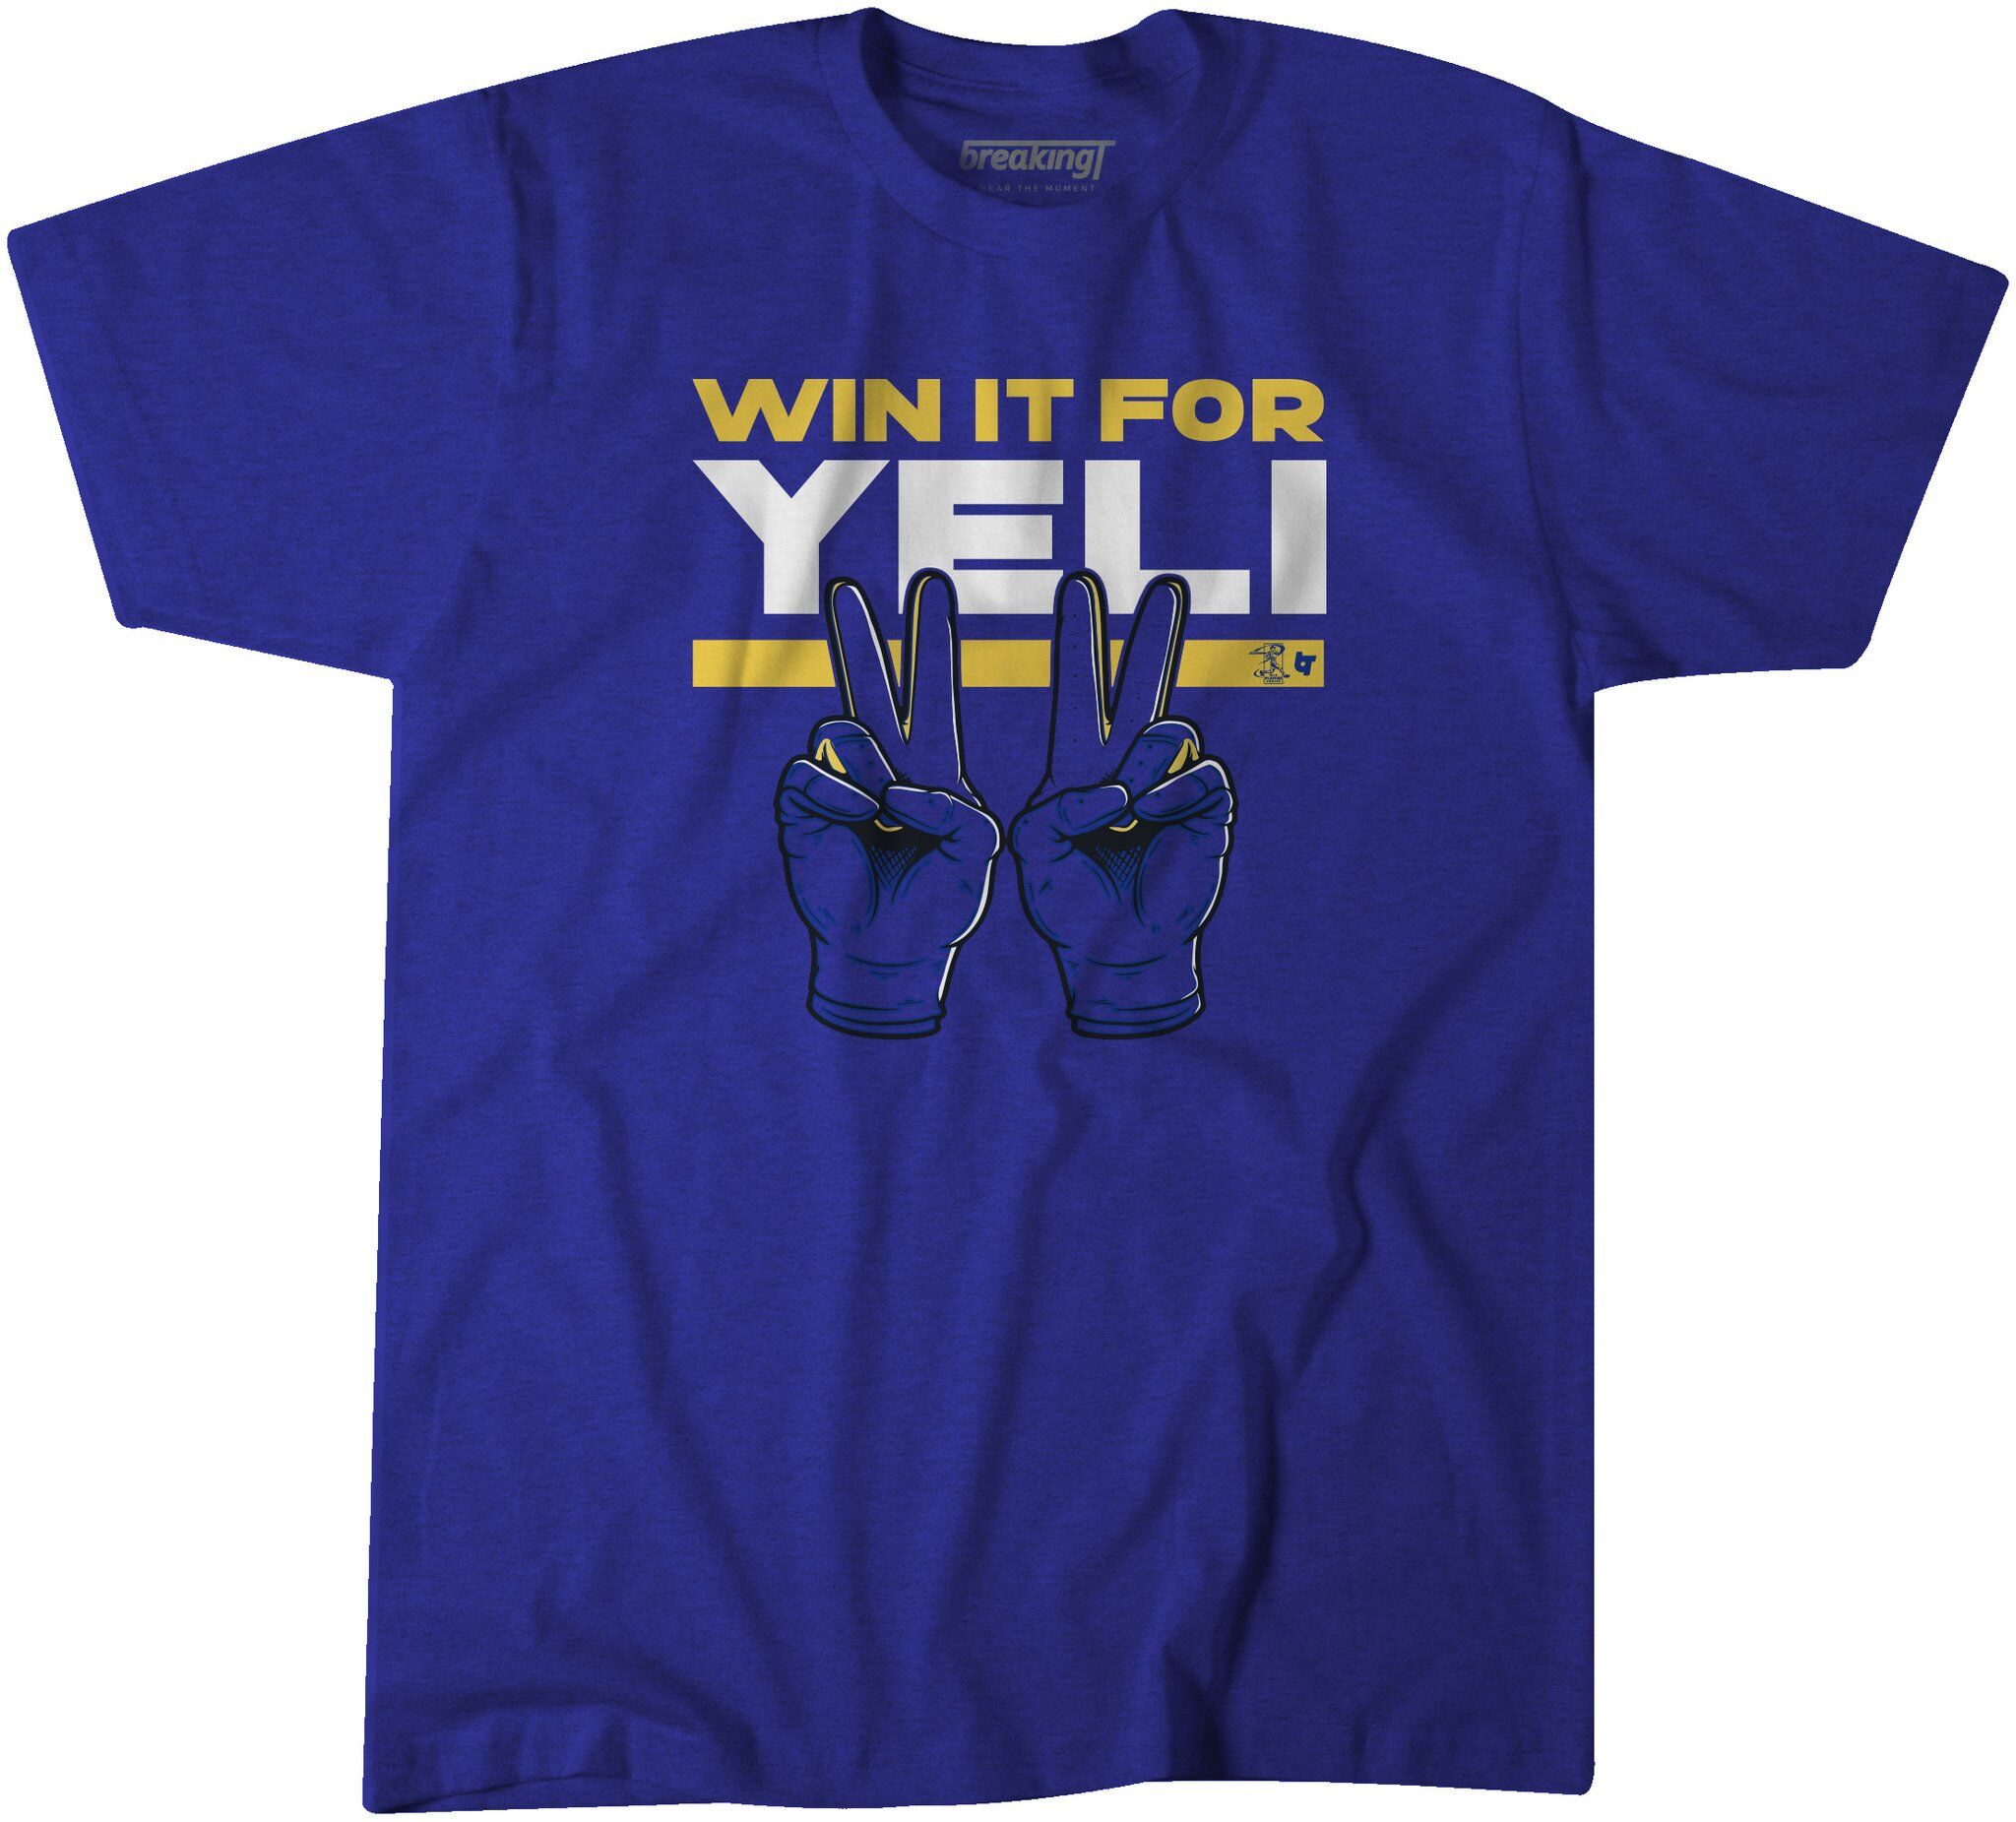 Milwaukee Brewers fans need this t-shirt